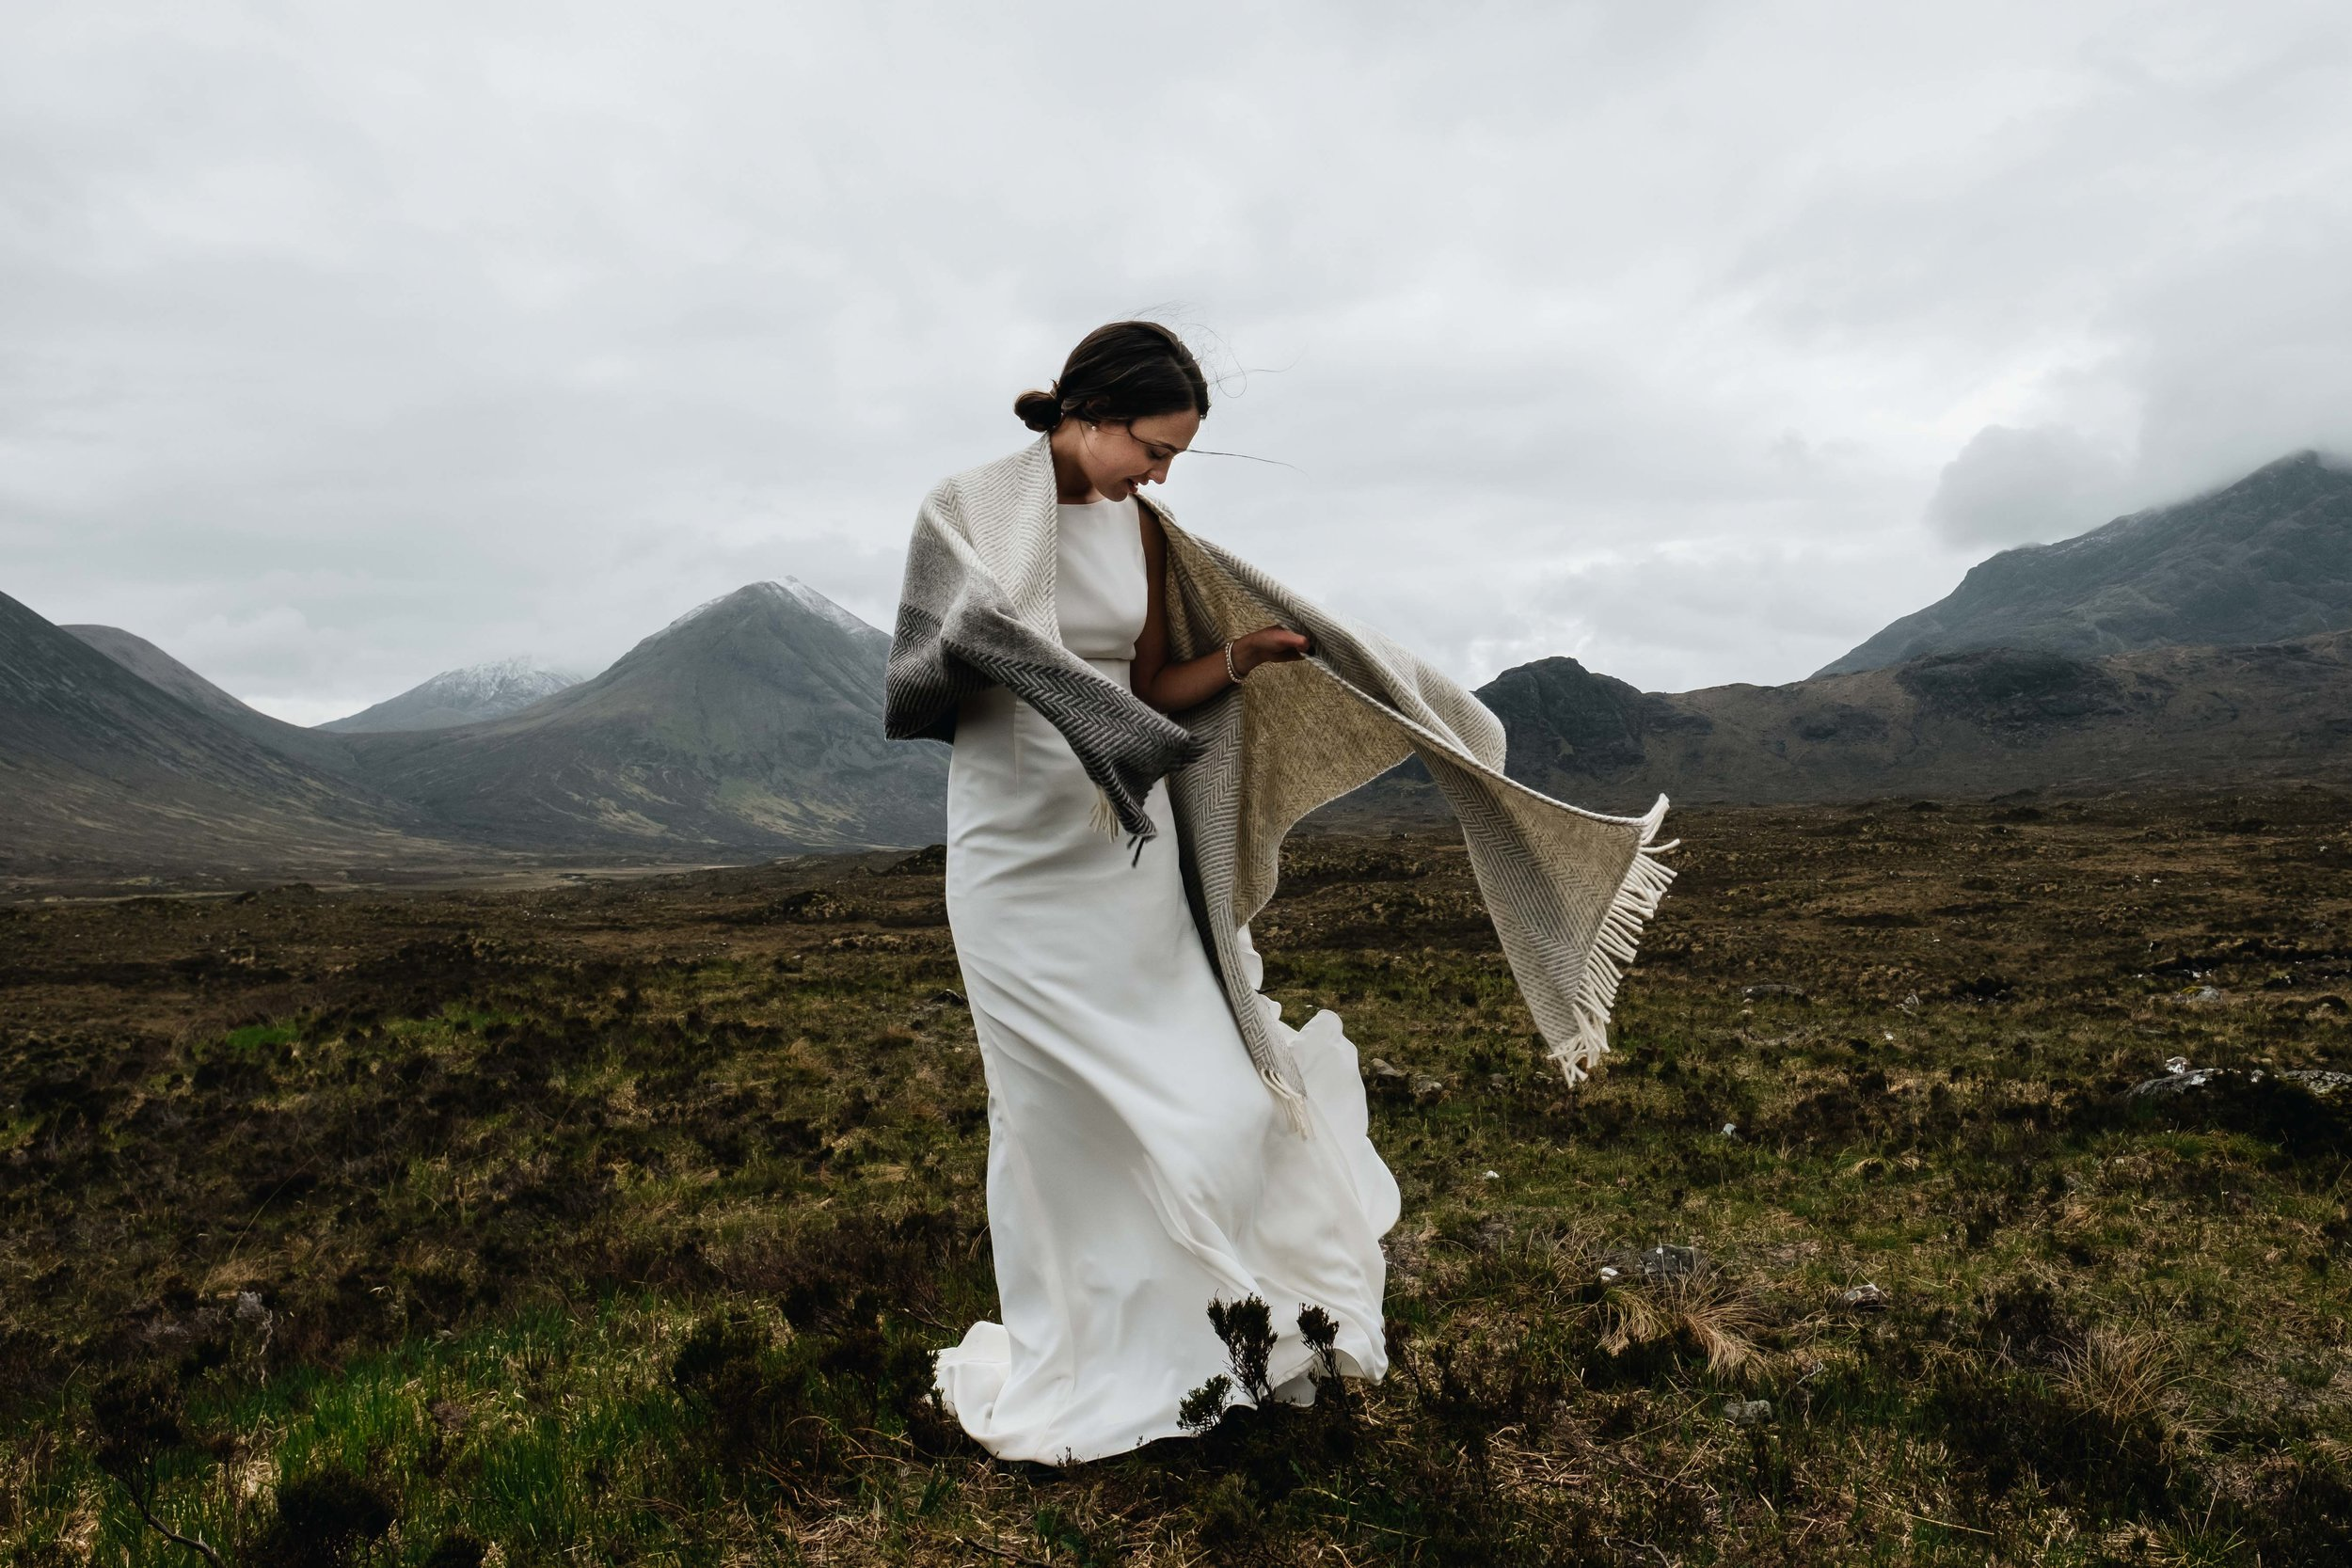 A bride's shawl is being blown in the wind.